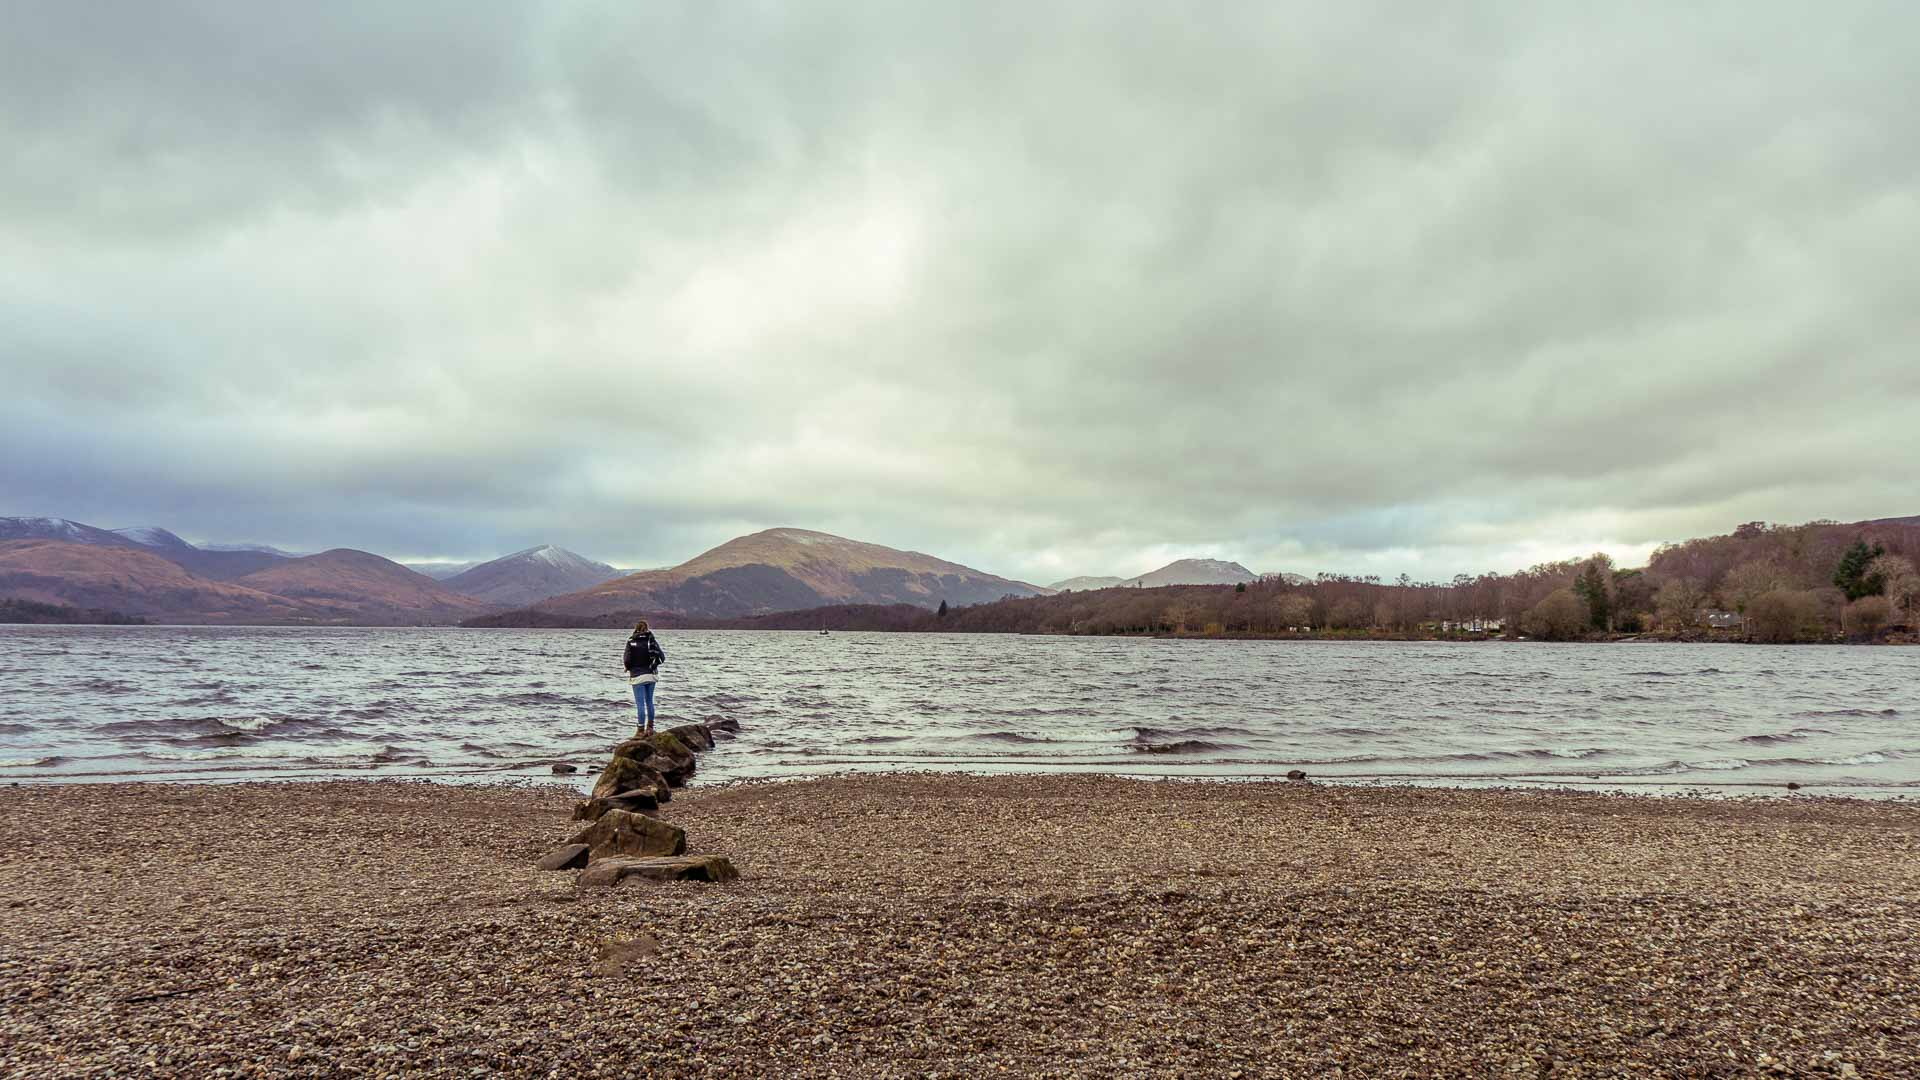 Loch Lomond en Trossachs National Park Schotland